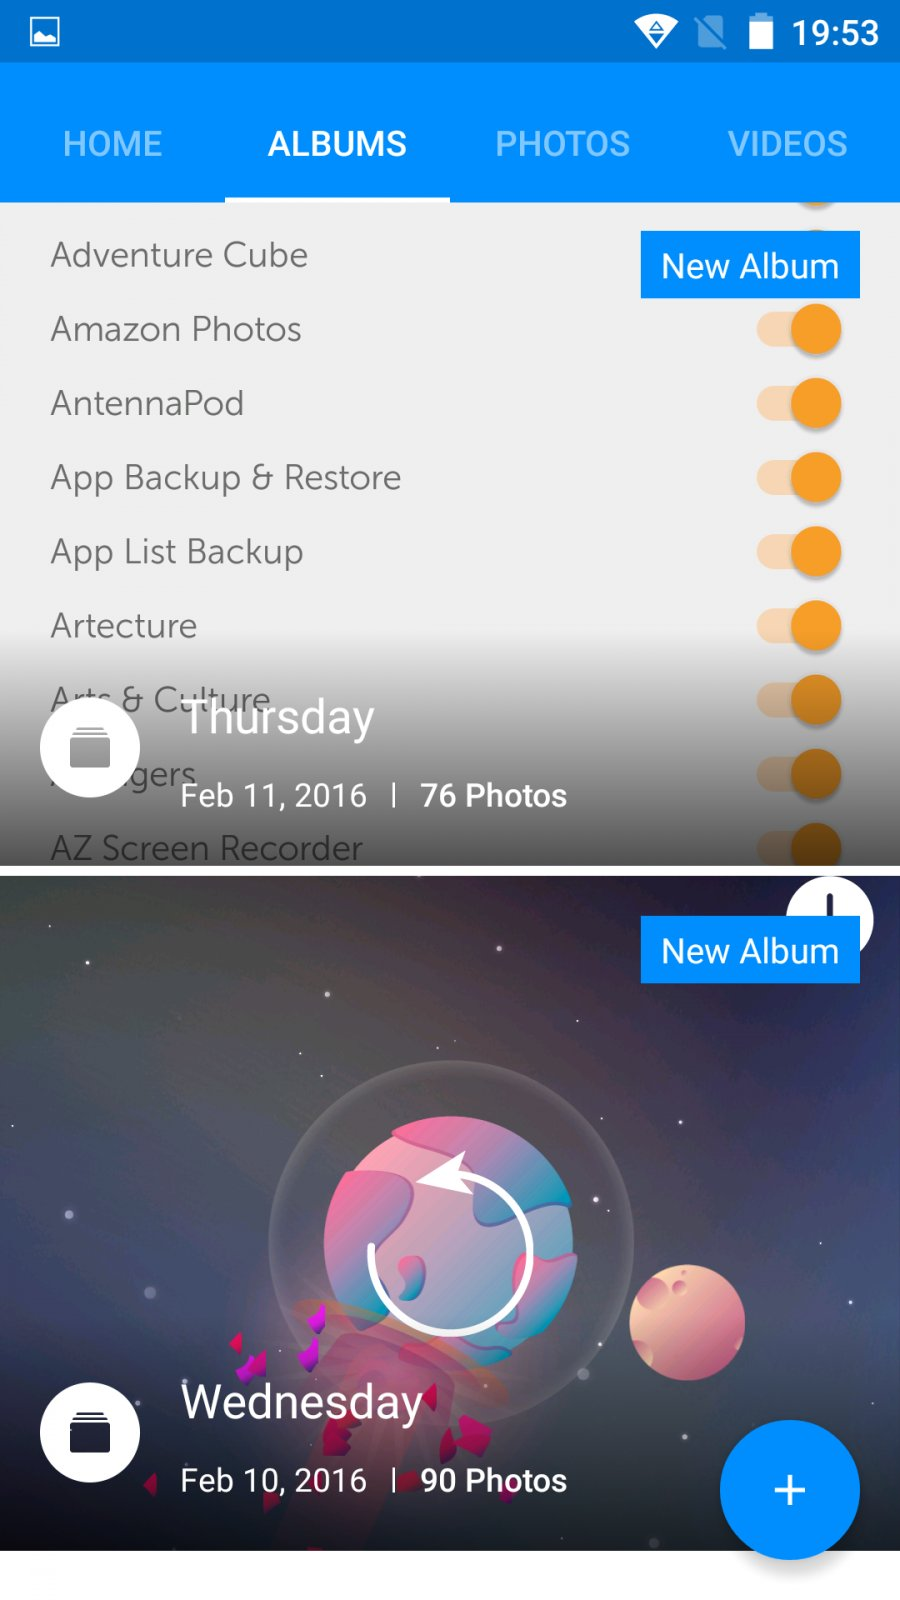 Everalbum Apk For Android - Approm.org MOD Free Full Download Unlimited Money Gold Unlocked All